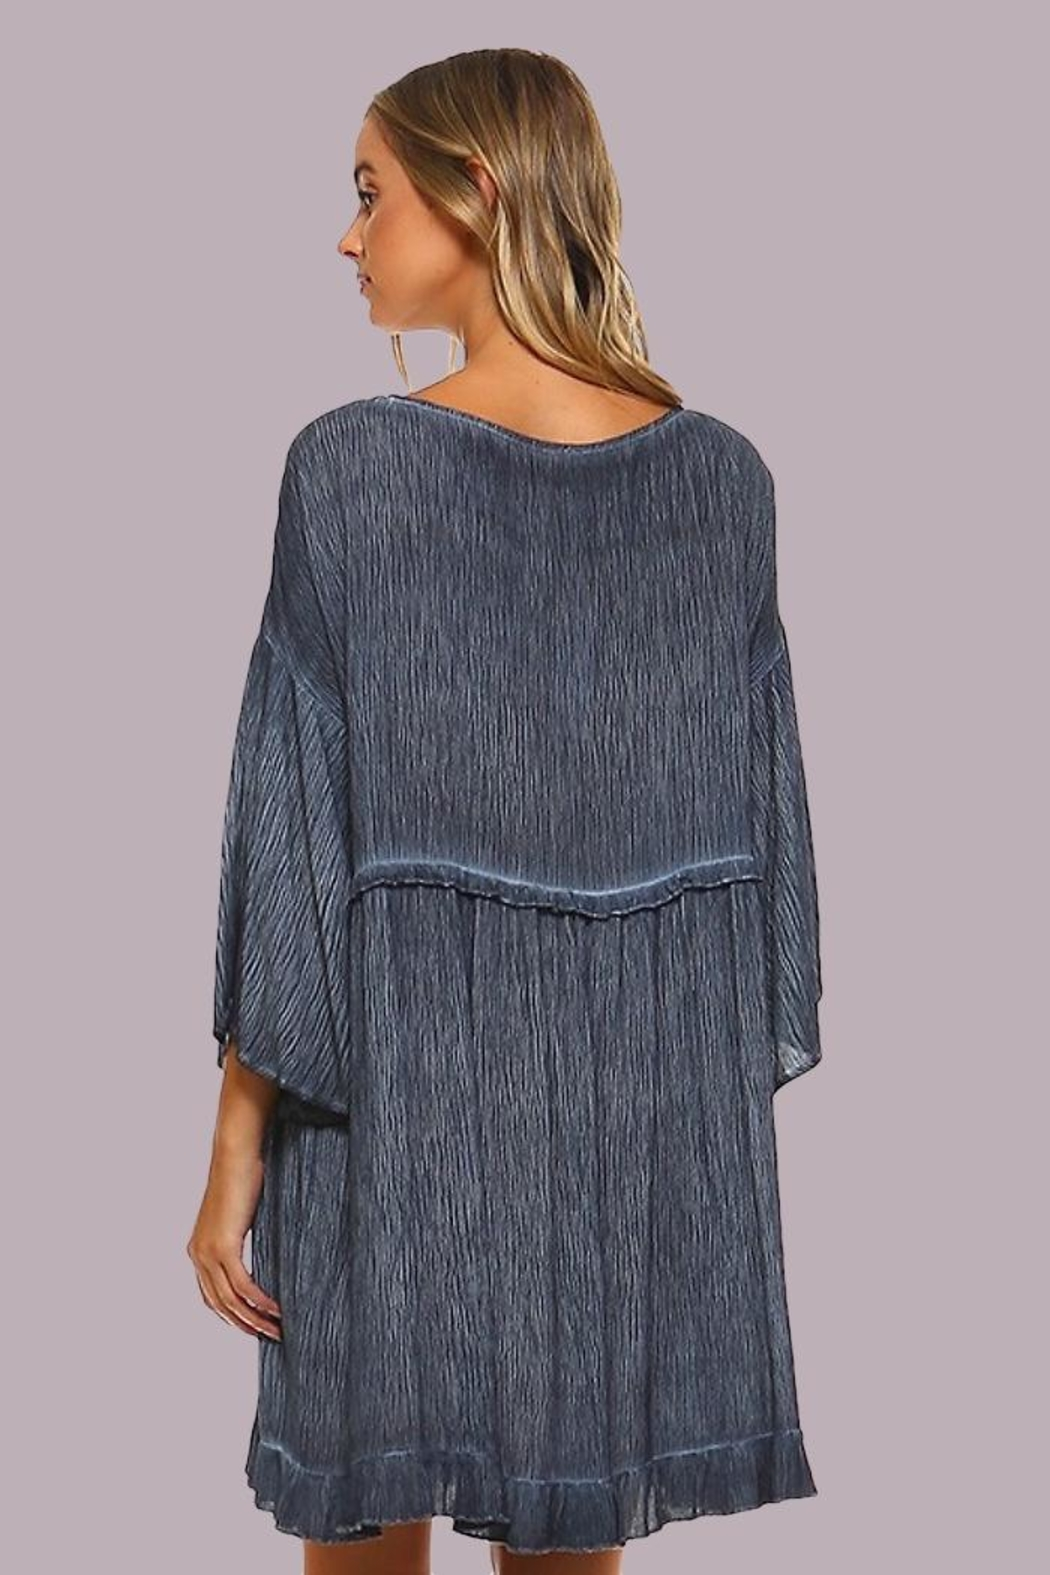 People Outfitter Margaret Summer Dress - Side Cropped Image